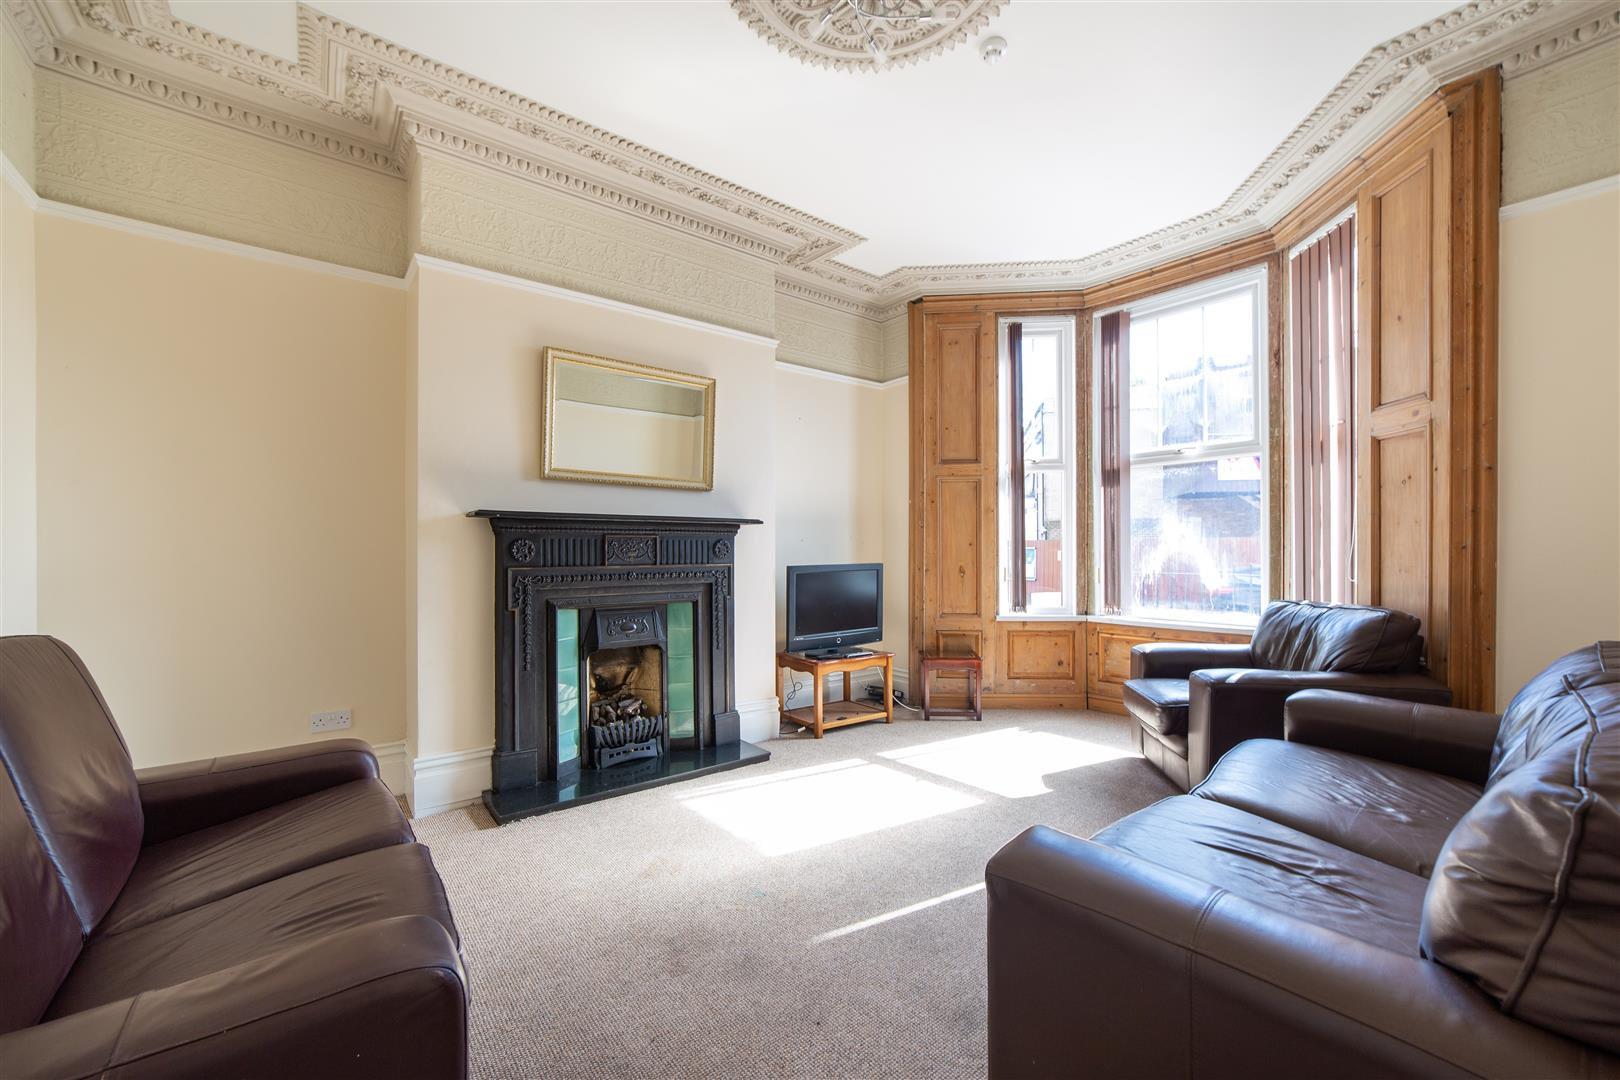 8 bed terraced house to rent in Newcastle Upon Tyne, NE2 1JS  - Property Image 4